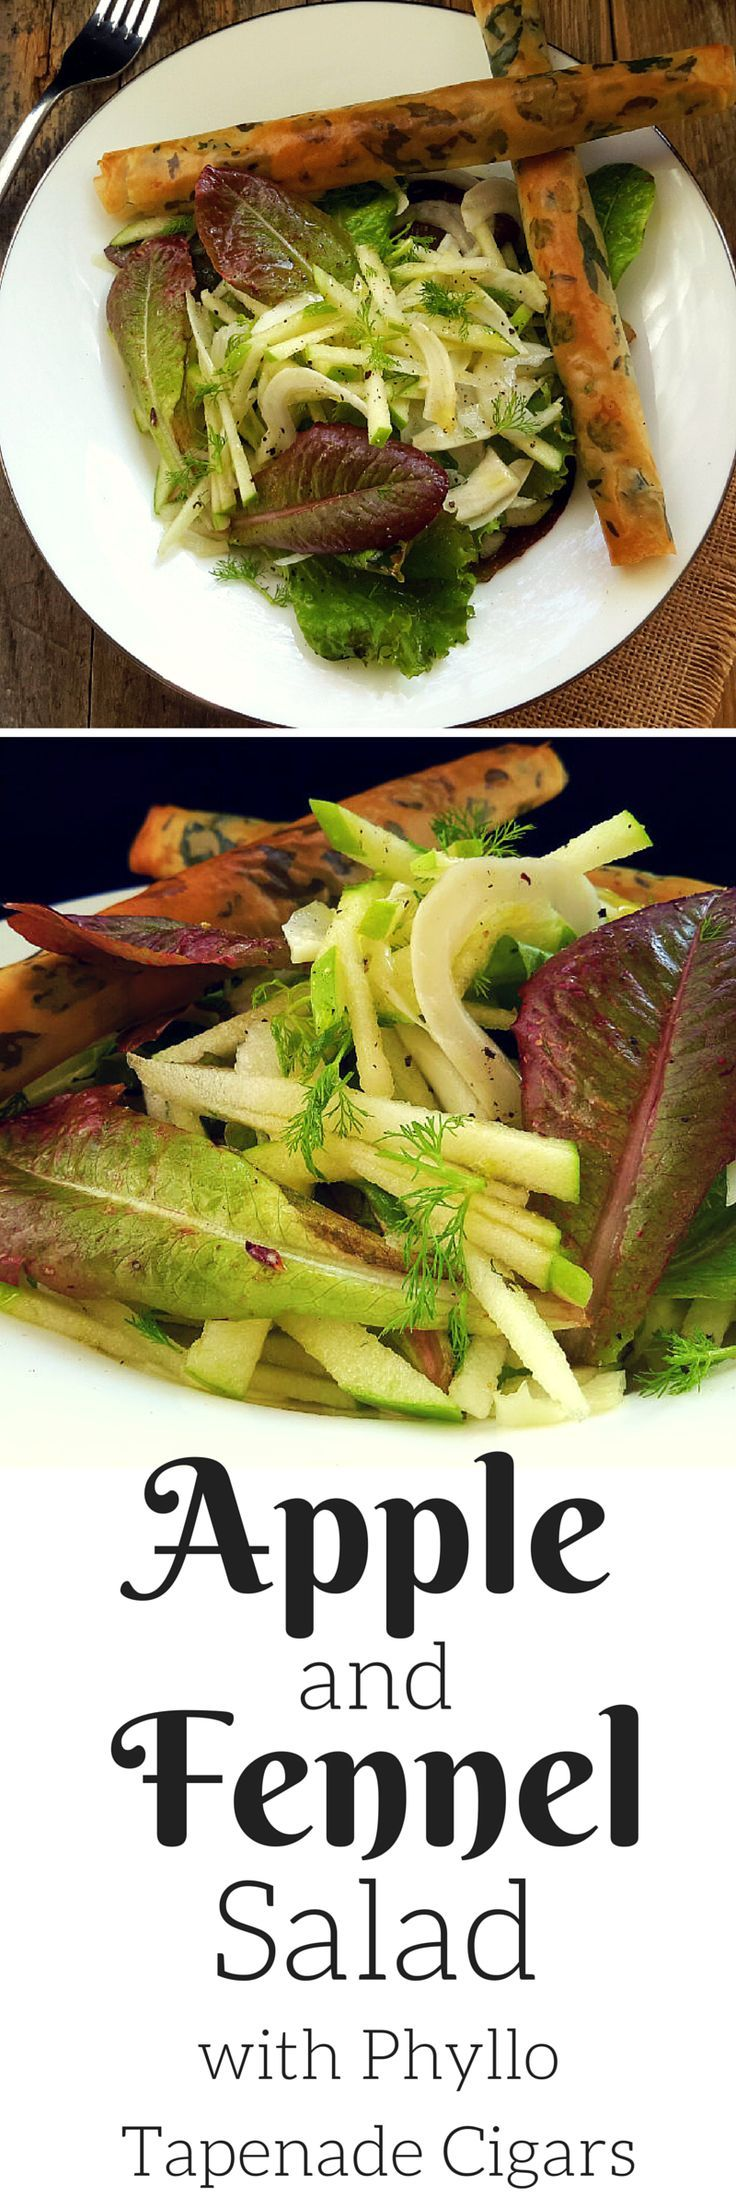 A delicious winter salad of fennel, apple and crisp lettuce. Served with tapenade-filled phyllo cigars decorated with fresh herbs. Makes a delightful vegetarian starter or main dish!